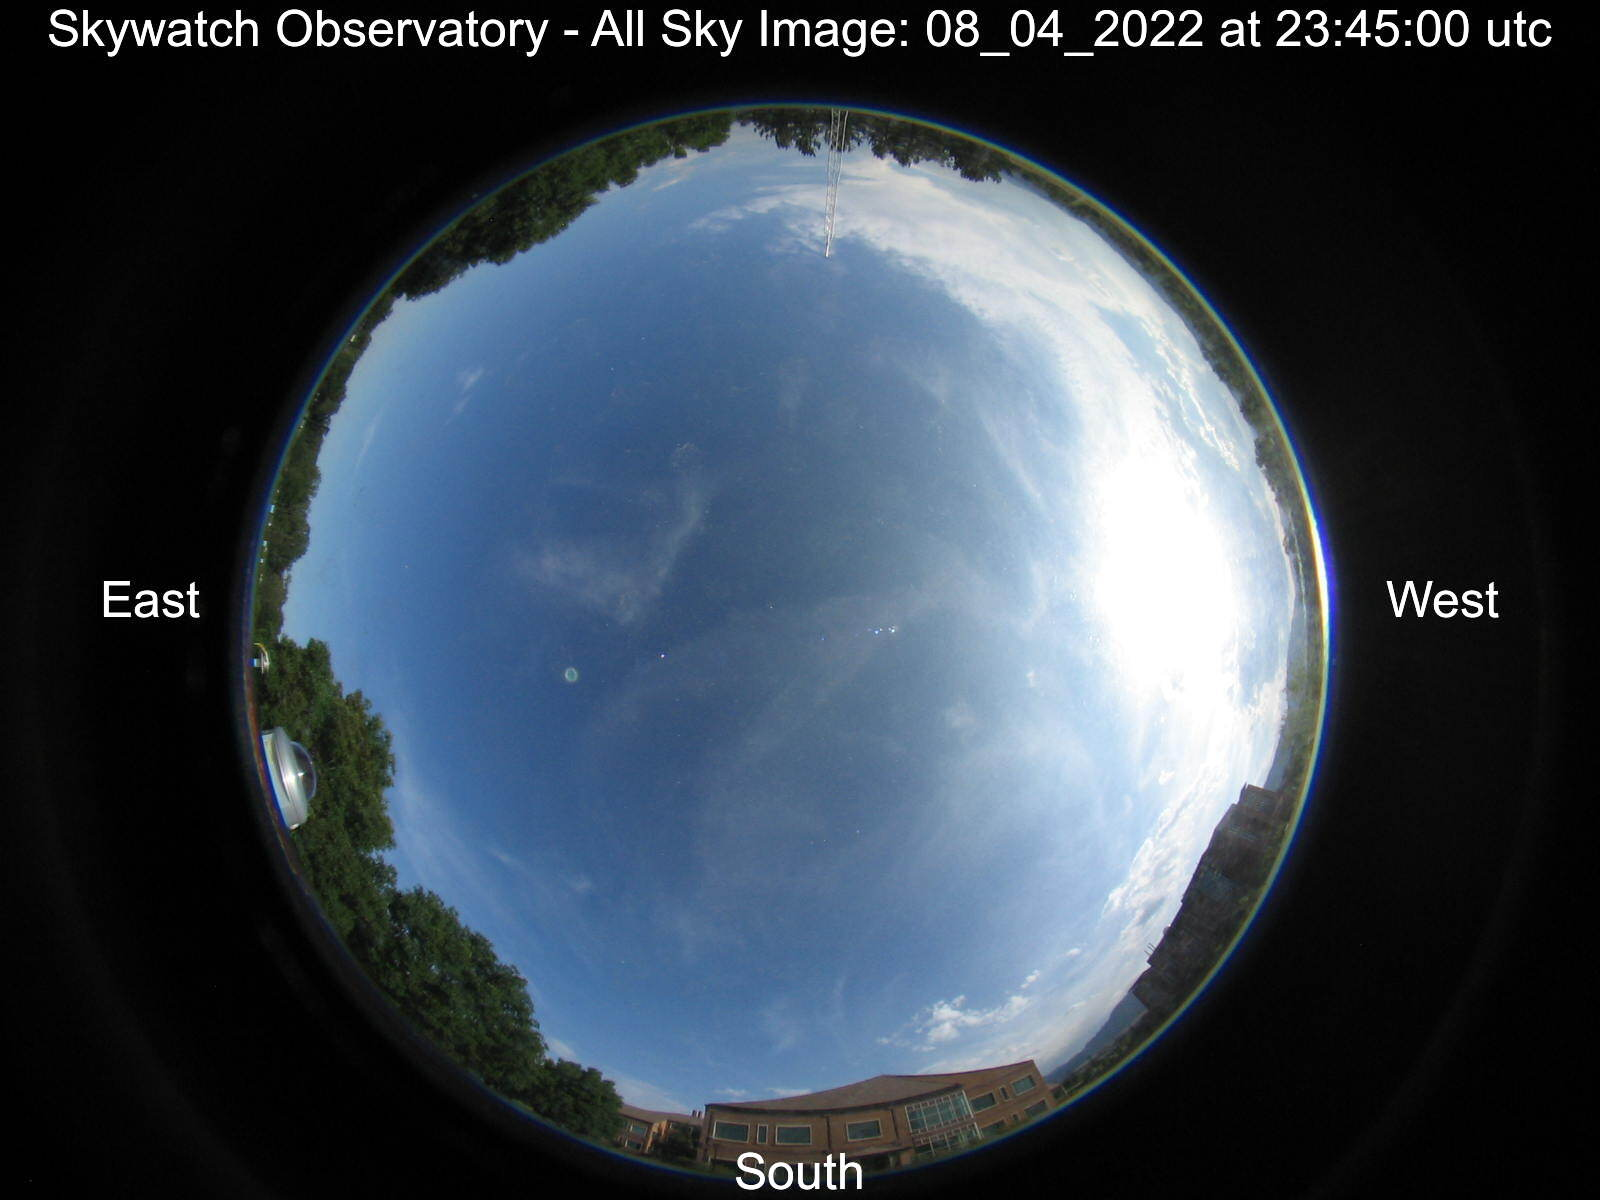 Hemispheric view of the sky above the observatory